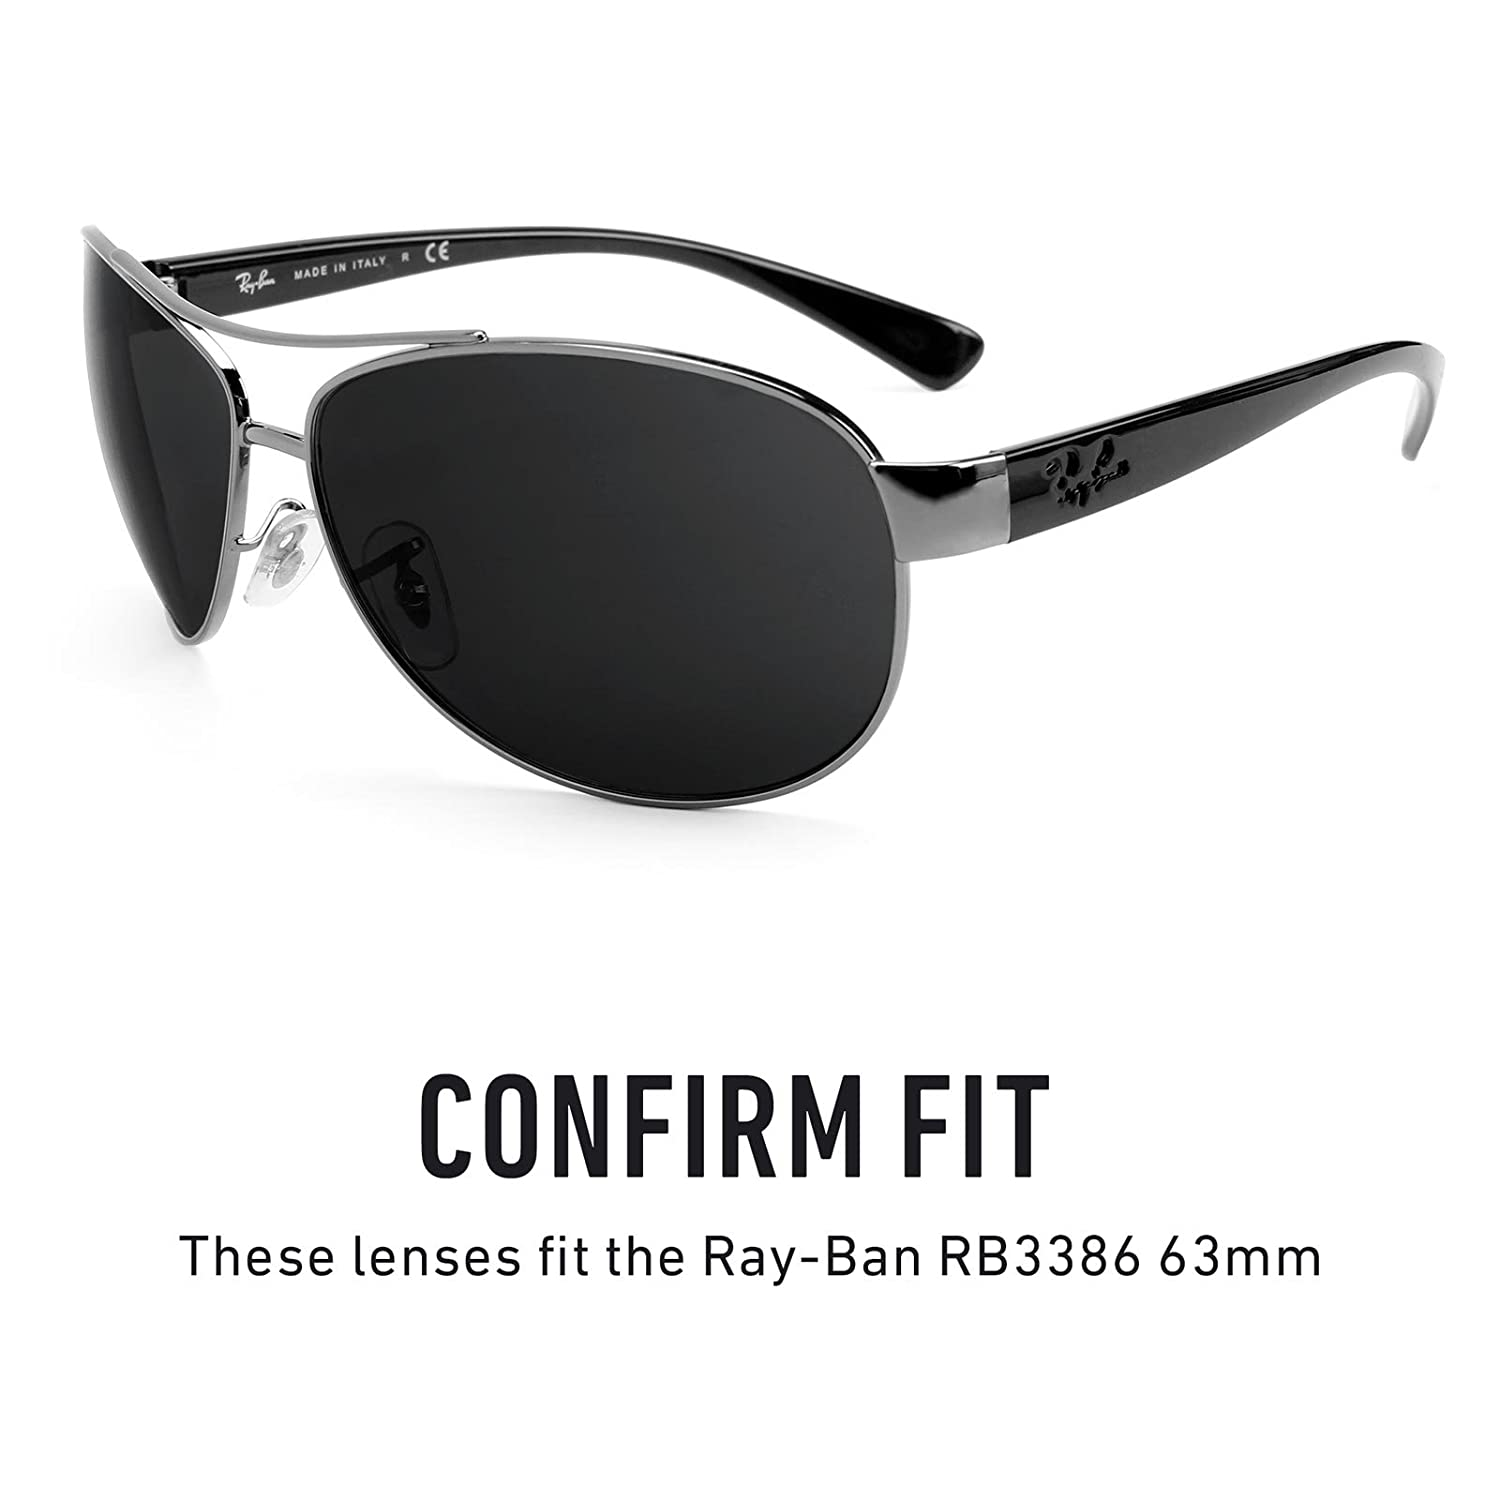 3dff666df51 Amazon.com  Revant Polarized Replacement Lenses for Ray-Ban RB3386 63mm  Elite Black Chrome MirrorShield  Sports   Outdoors